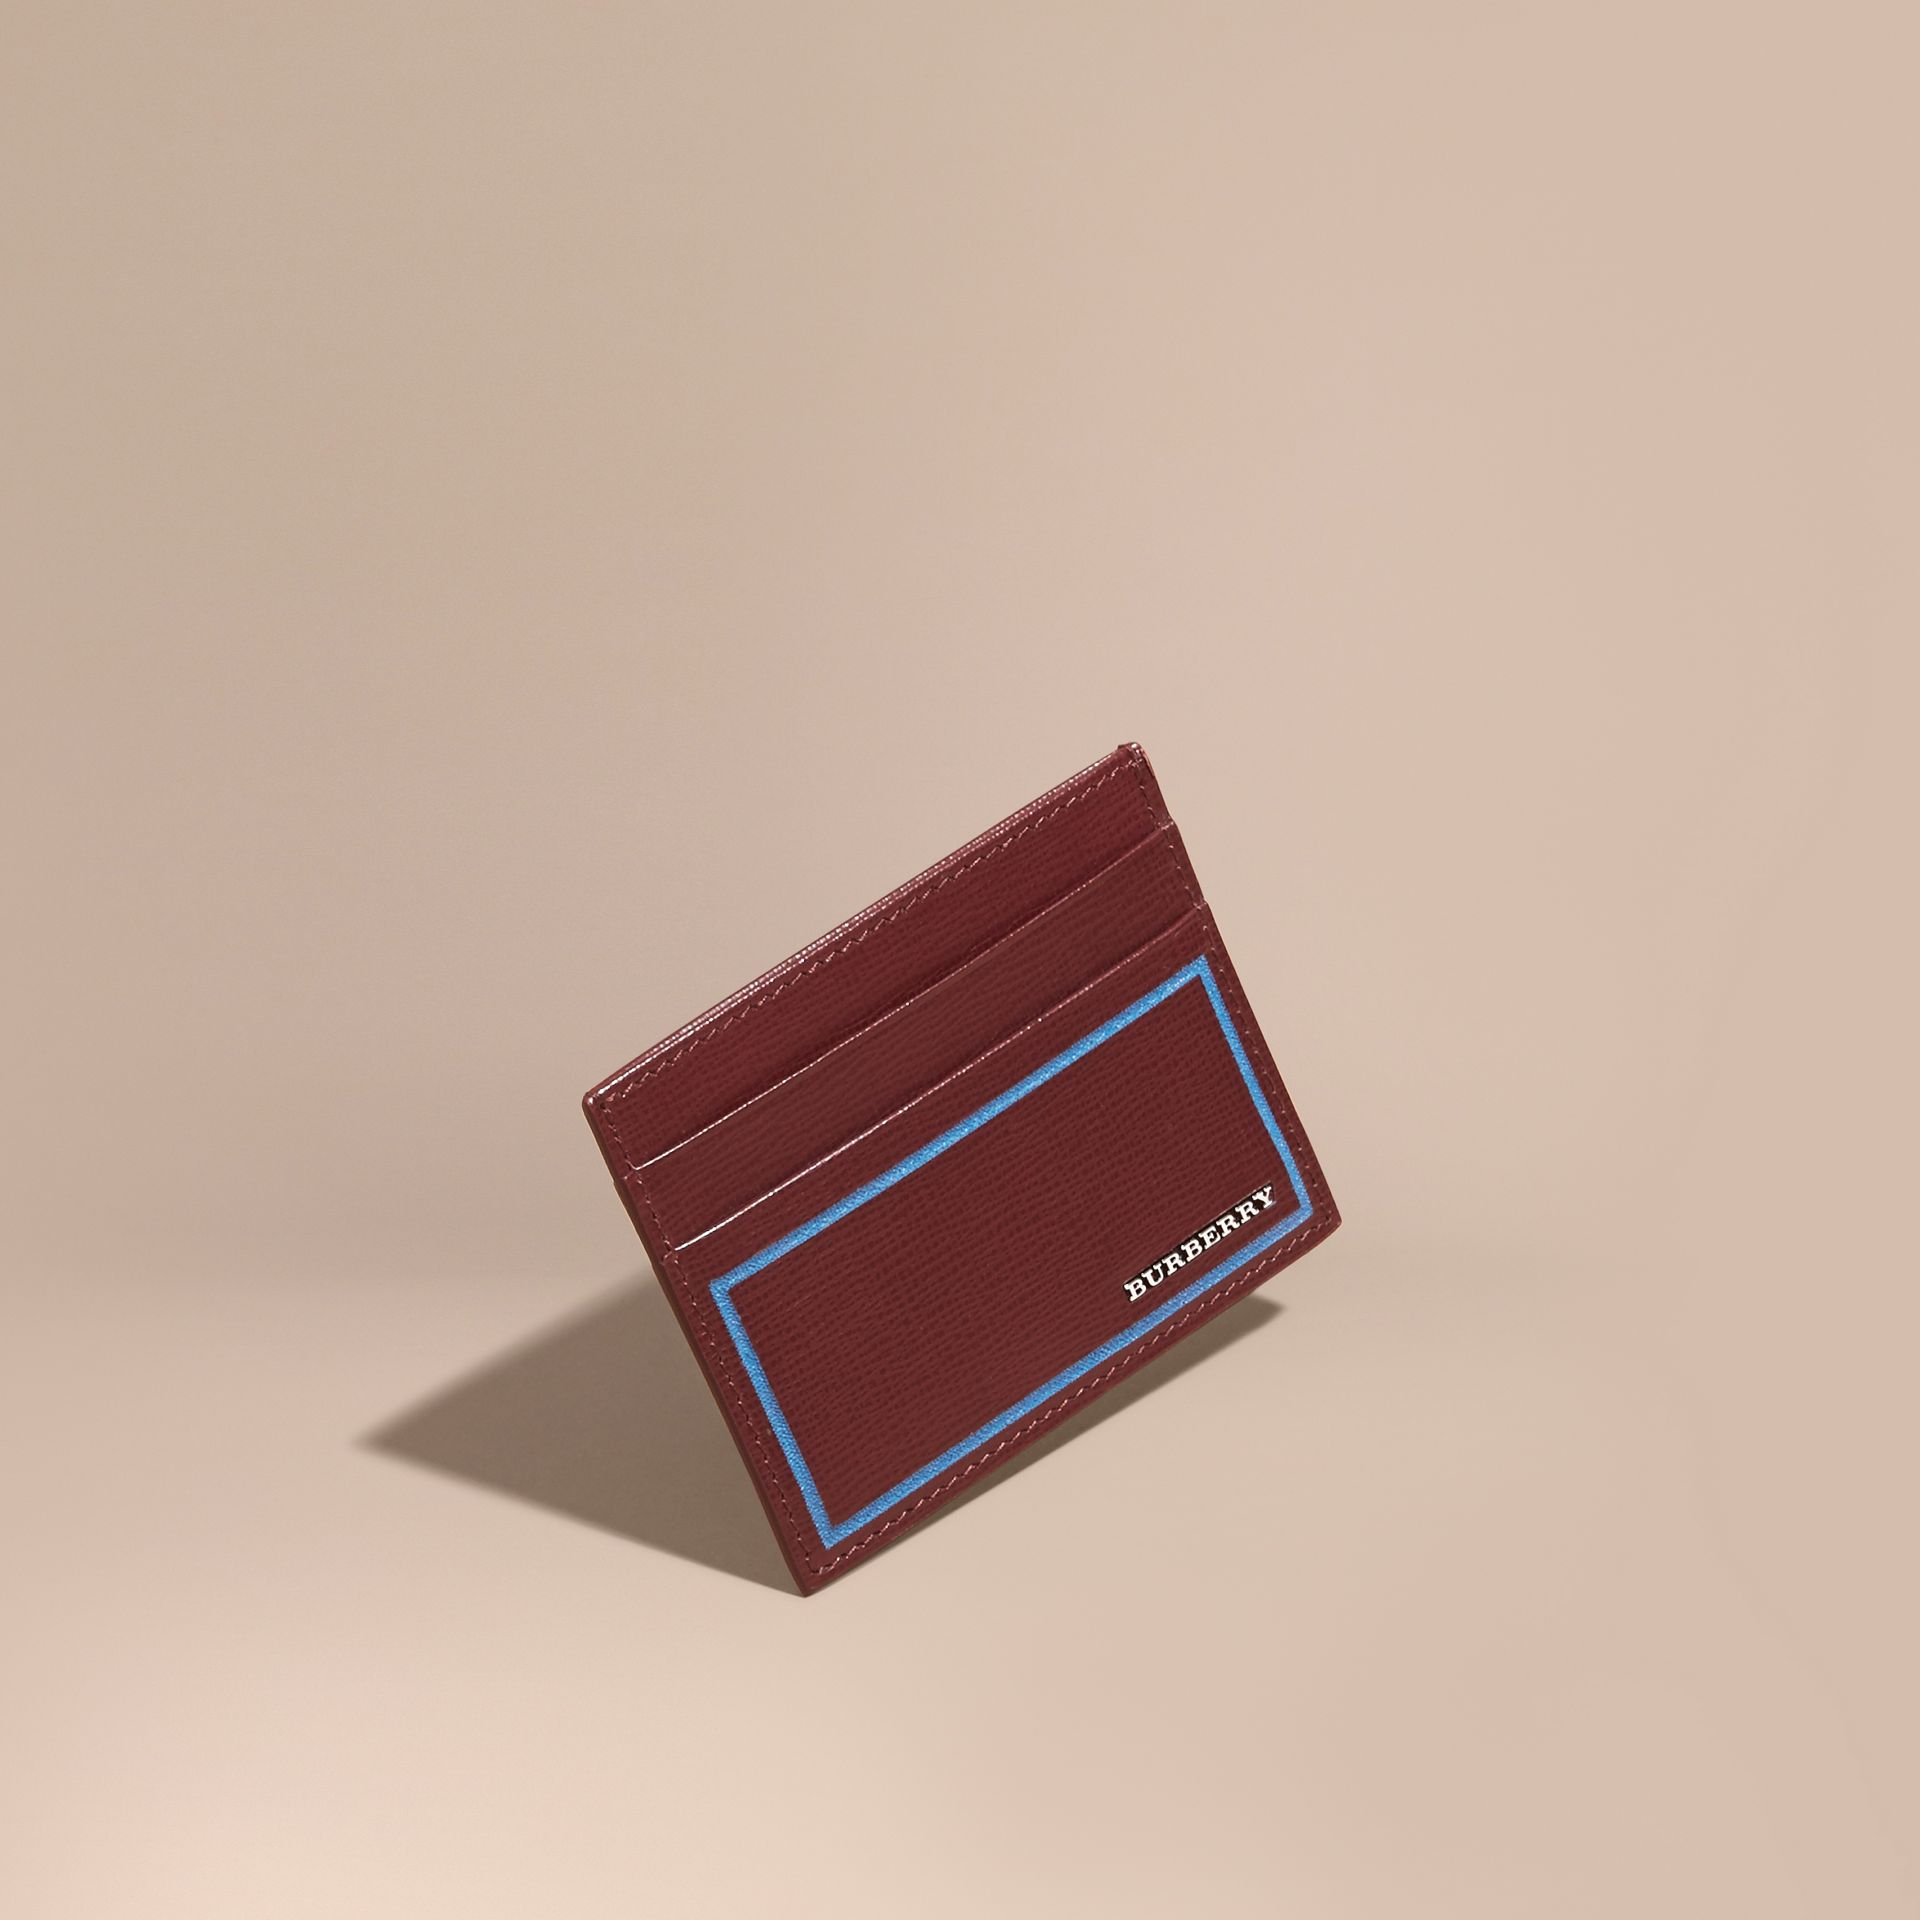 Border Detail London Leather Card Case in Burgundy Red - gallery image 1